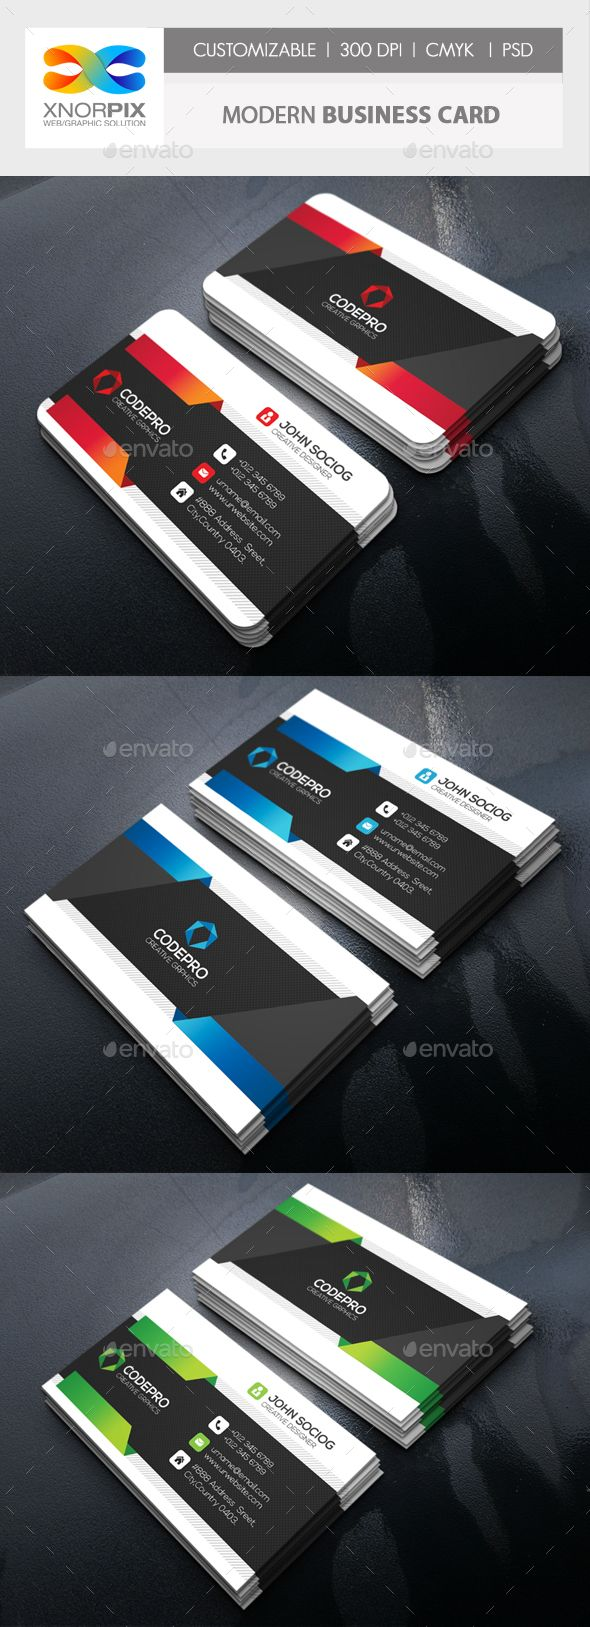 #Modern #Business Card - #Corporate Business #Cards Download here: https://graphicriver.net/item/modern-business-card/18266124?ref=alena994